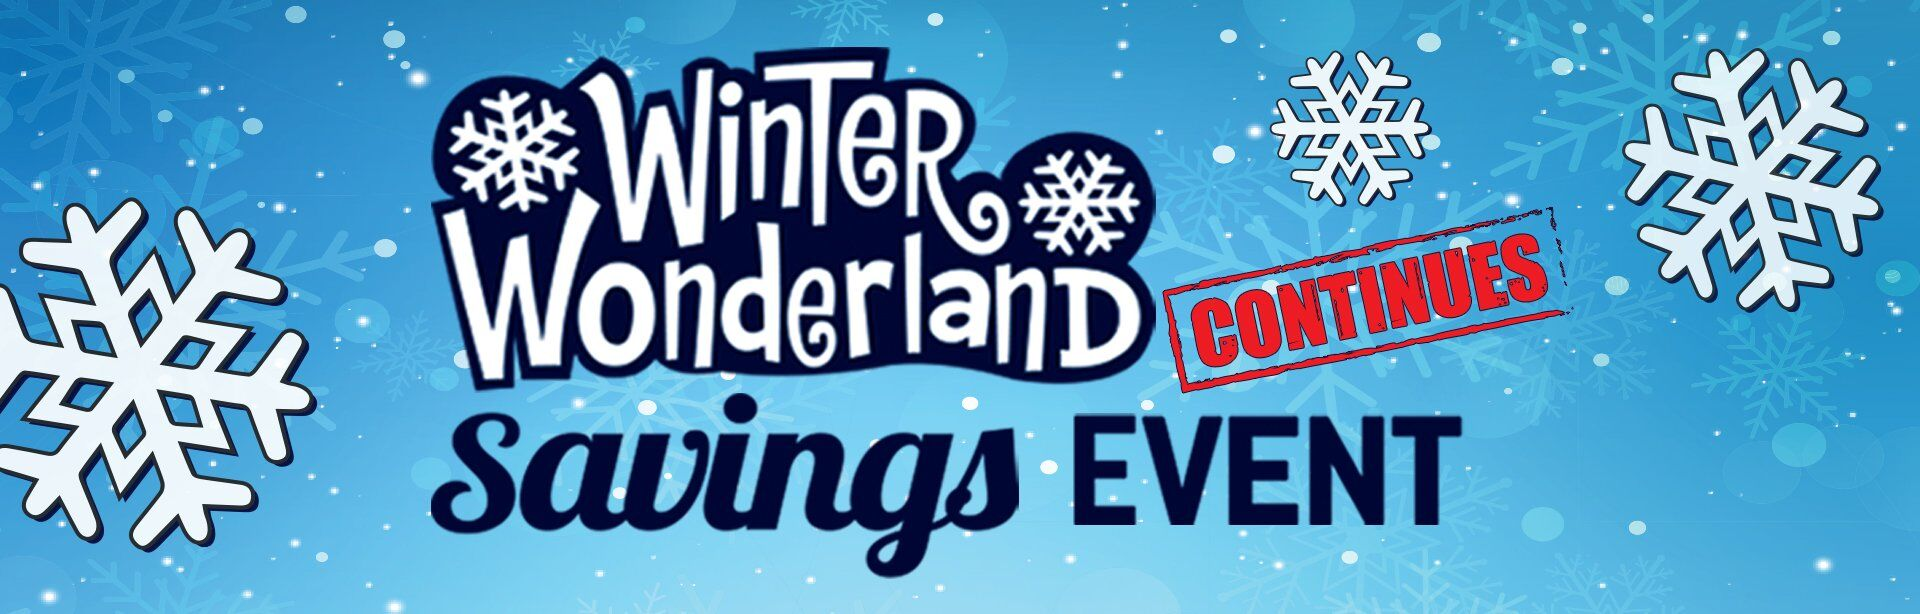 Winter Wonderland Savings Event